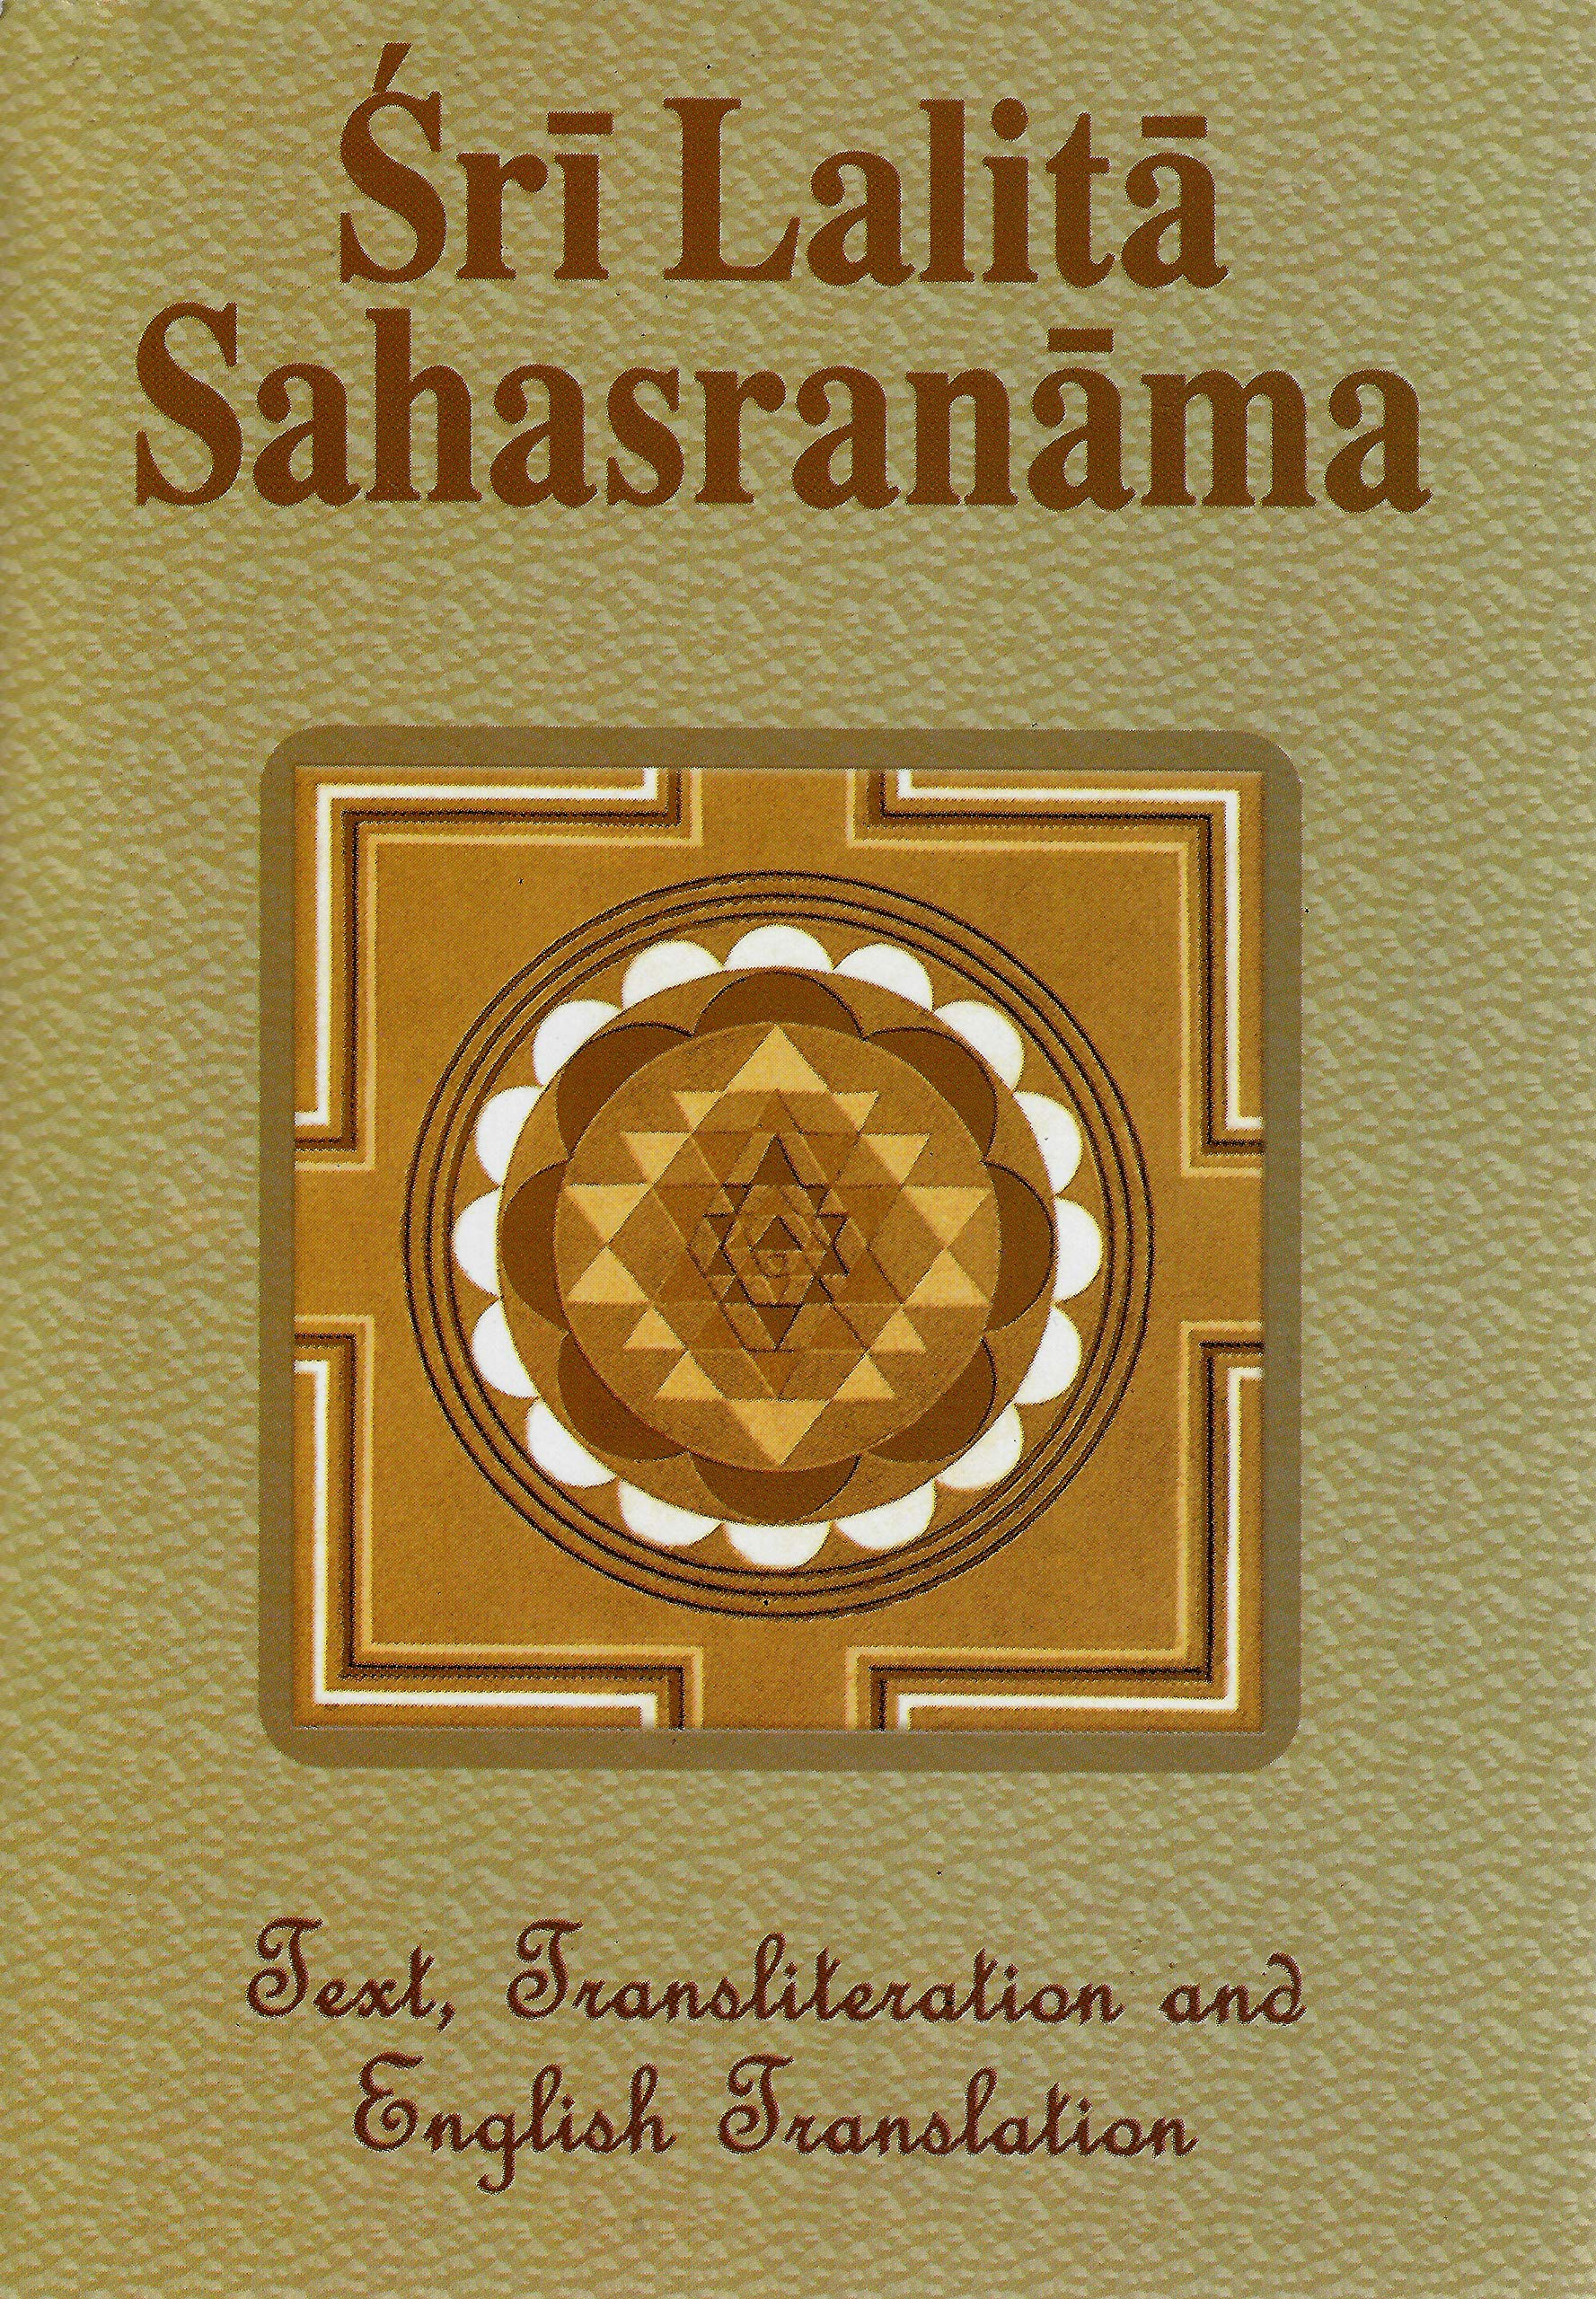 Buy Sri Lalita Sahasranama - English Book Online at Low Prices in